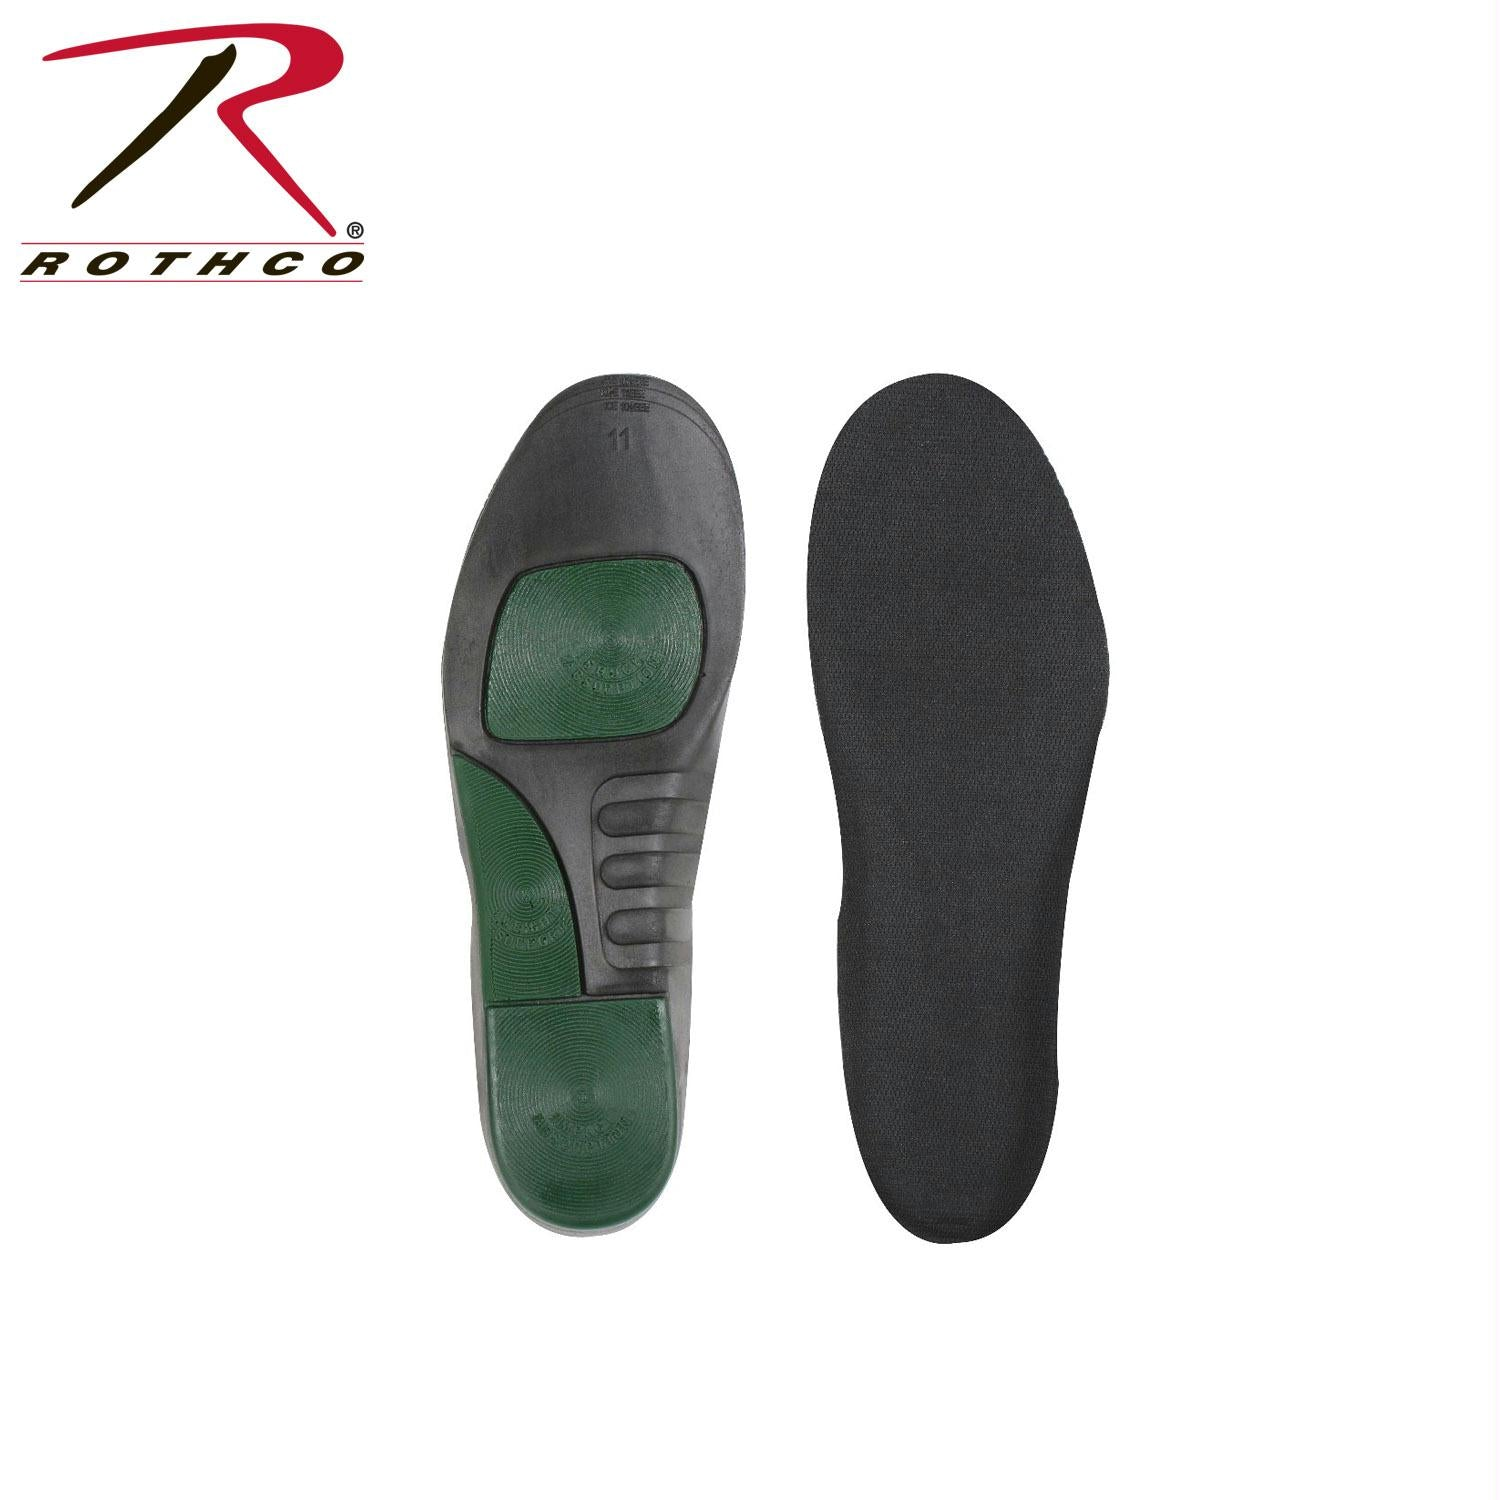 Rothco Military And Public Safety Insoles - 6 - 7